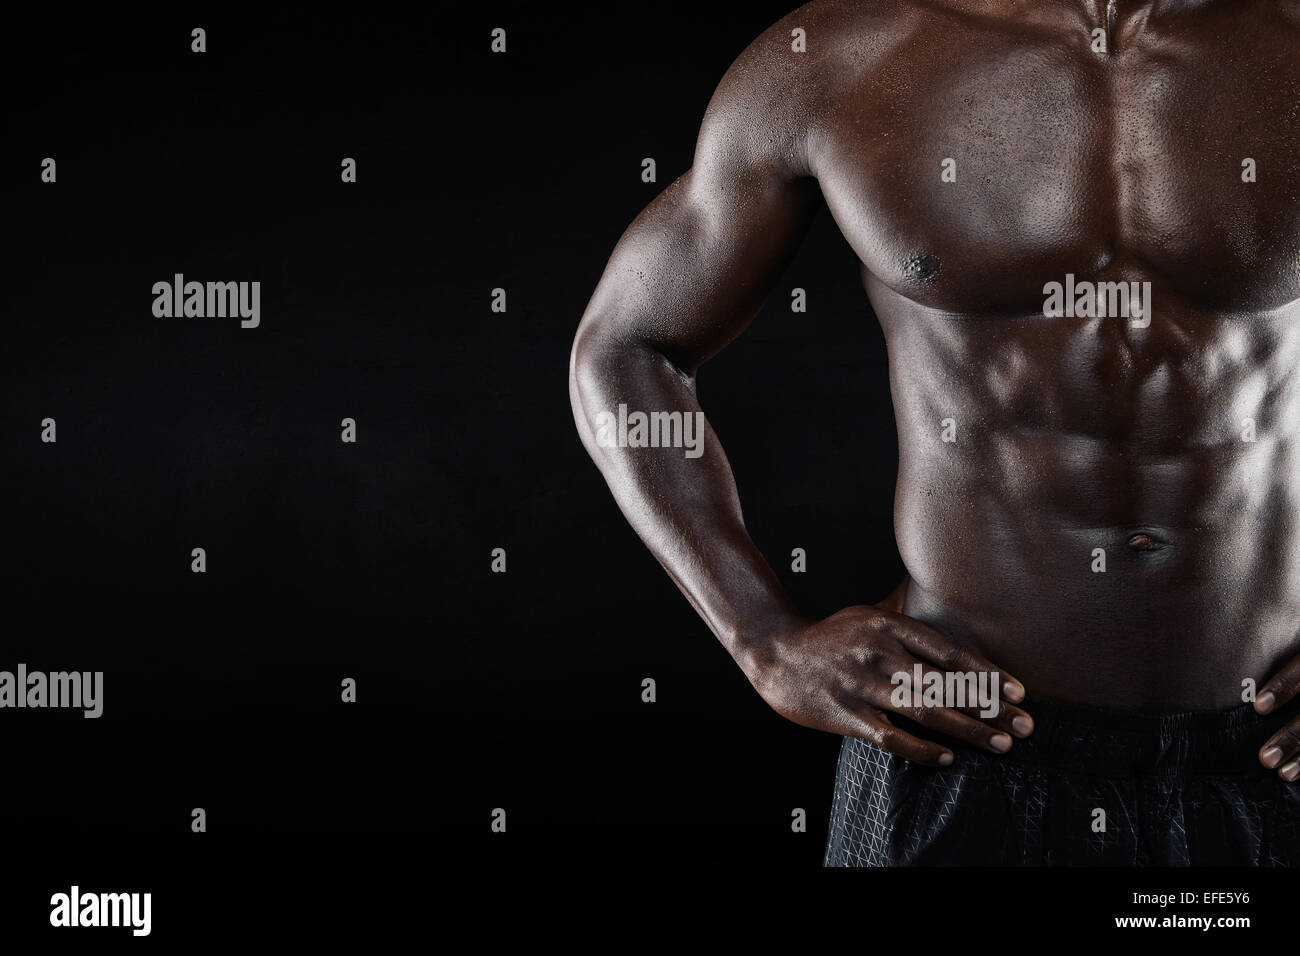 Close-up of shirtless african man with hands on hip while standing against black background. Cropped image of torso - Stock Image